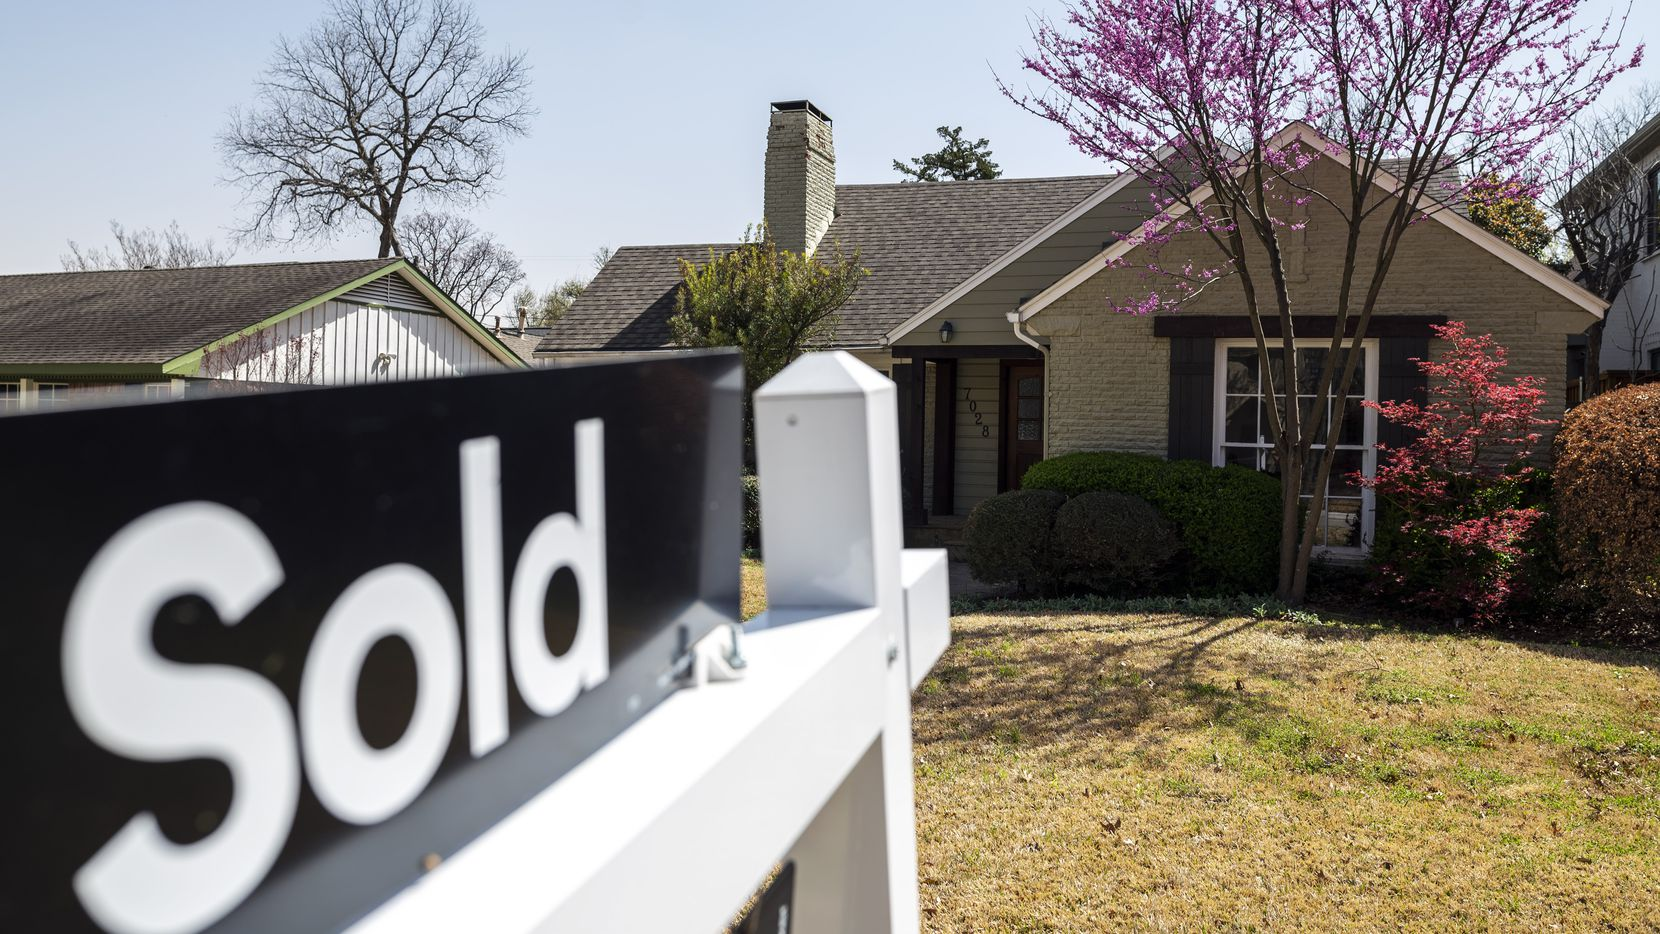 Dallas-area home prices were up by more than 9% year-over-year in January.